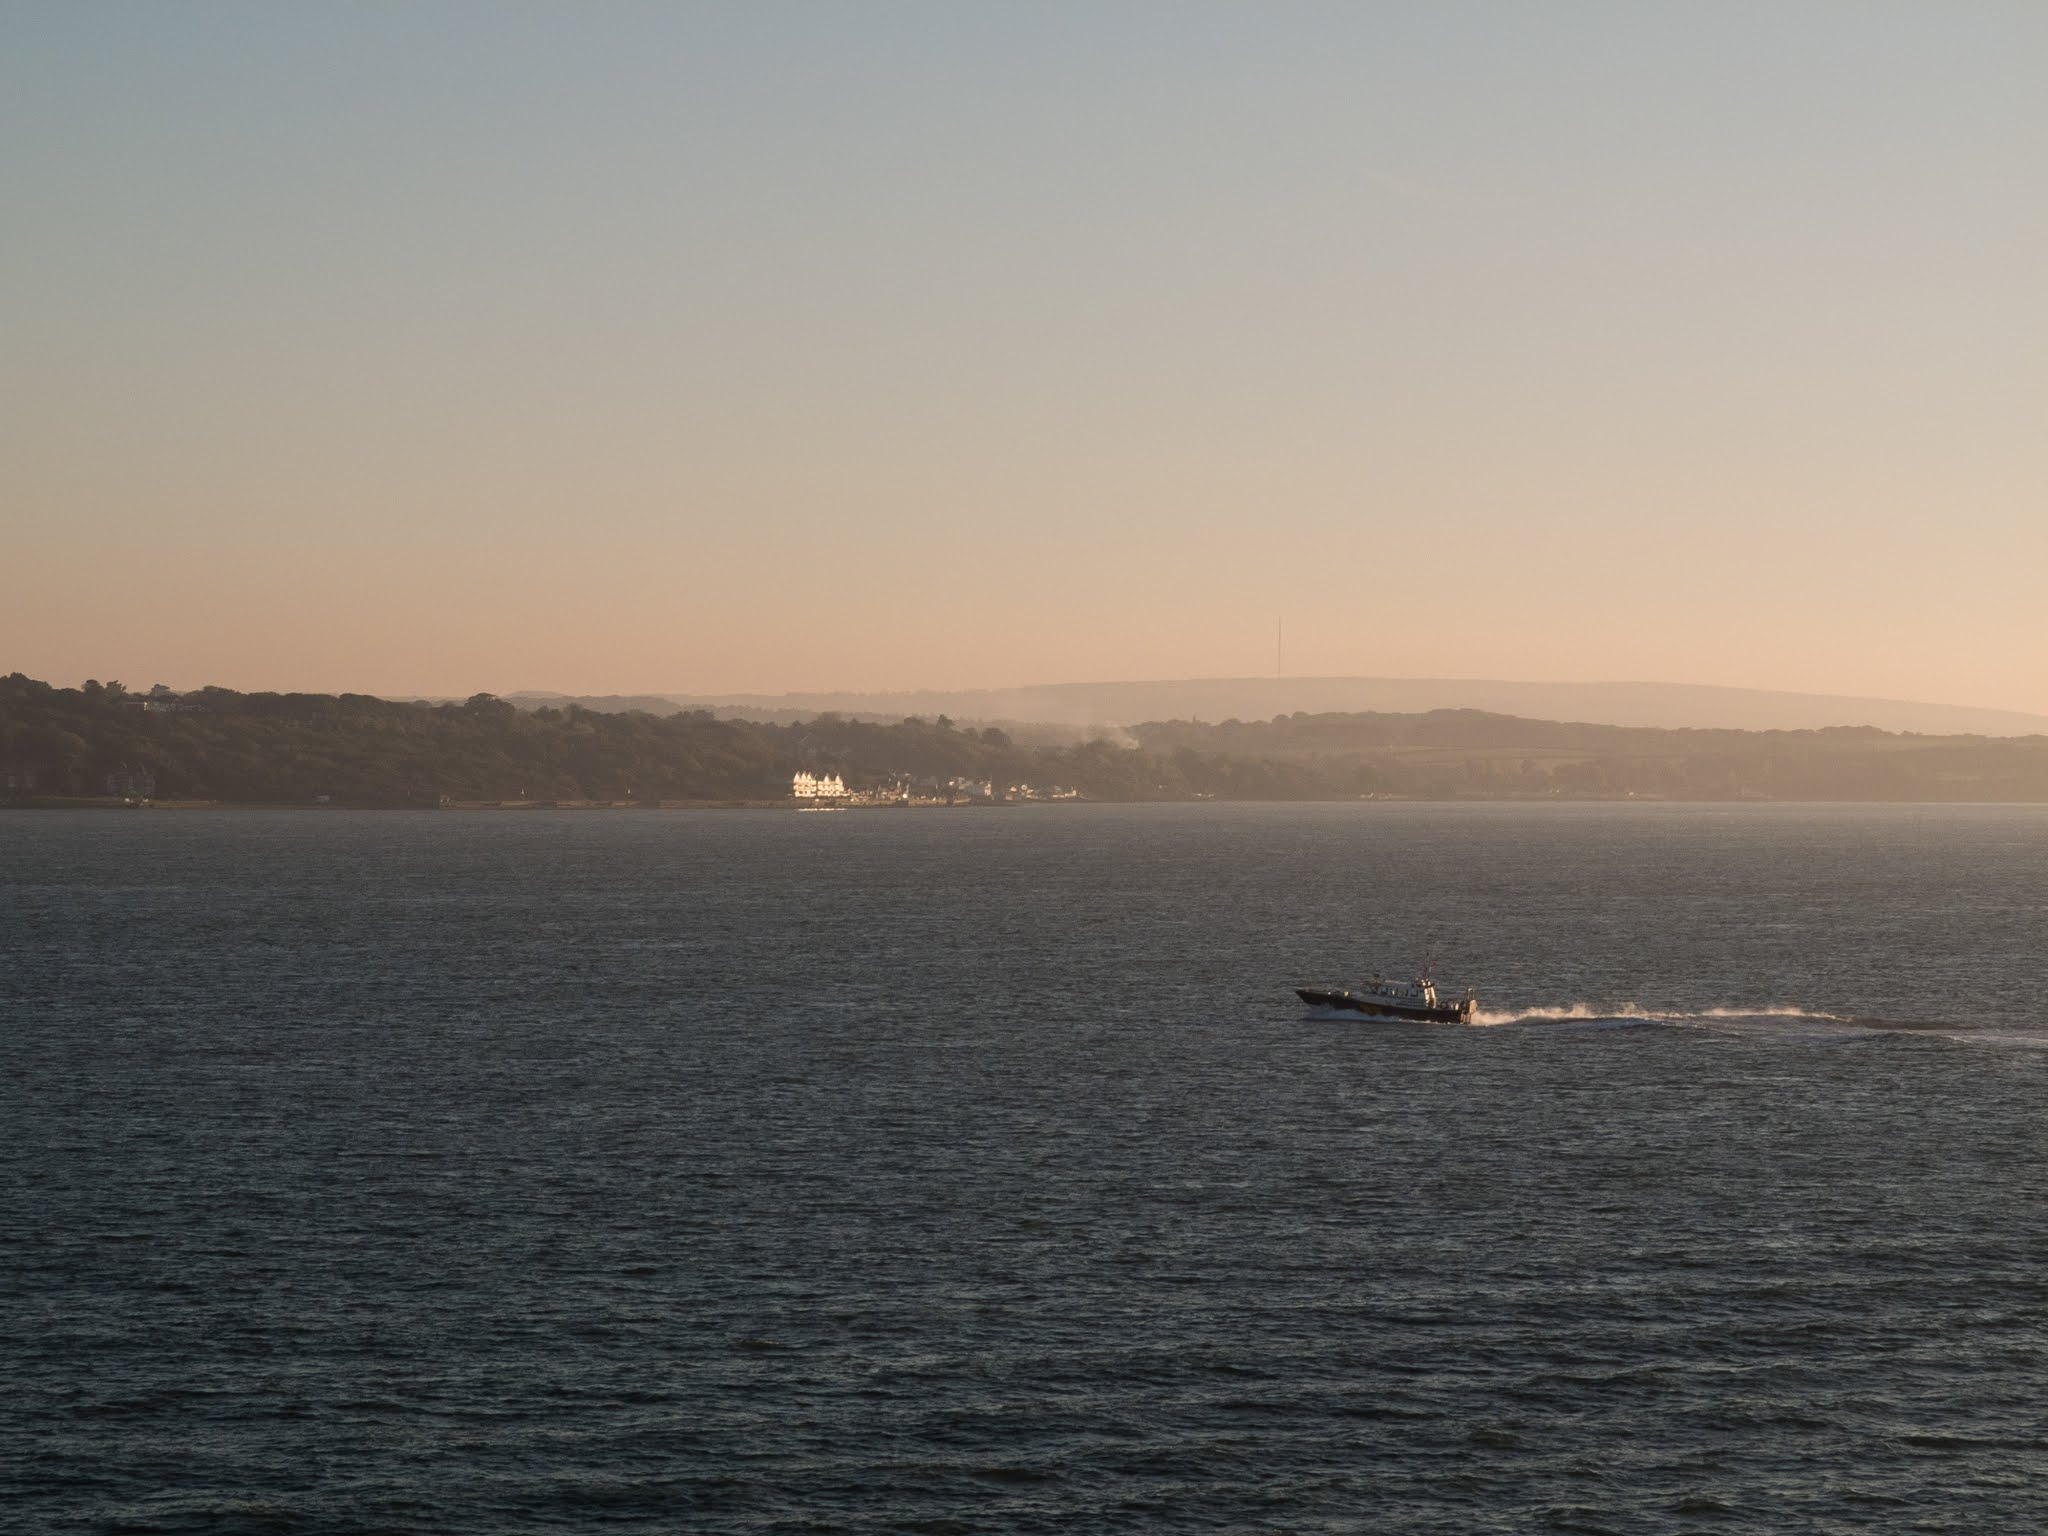 A boat sailing across the Solent at golden hour.